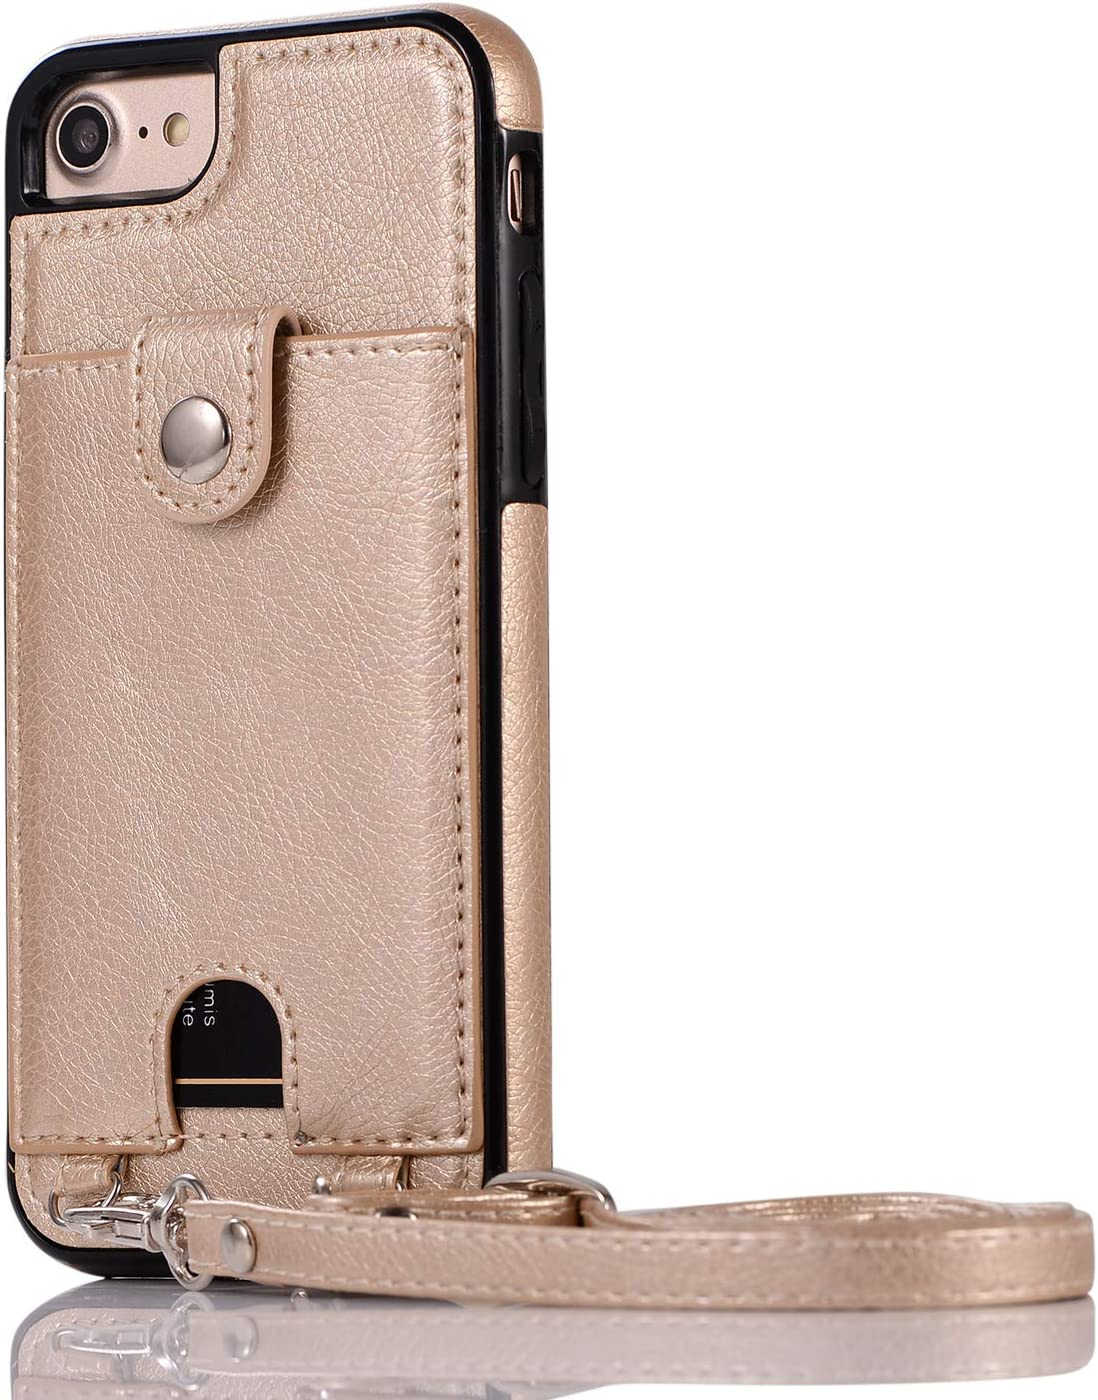 LUVI for iPhone 6 Plus/iPhone 6s Plus Wallet Case PU Leather Card Holder Credit Card Slot Pocket Protective Cover with Crossbody Neck Strap Lanyard Shoulder Strap Case Gold